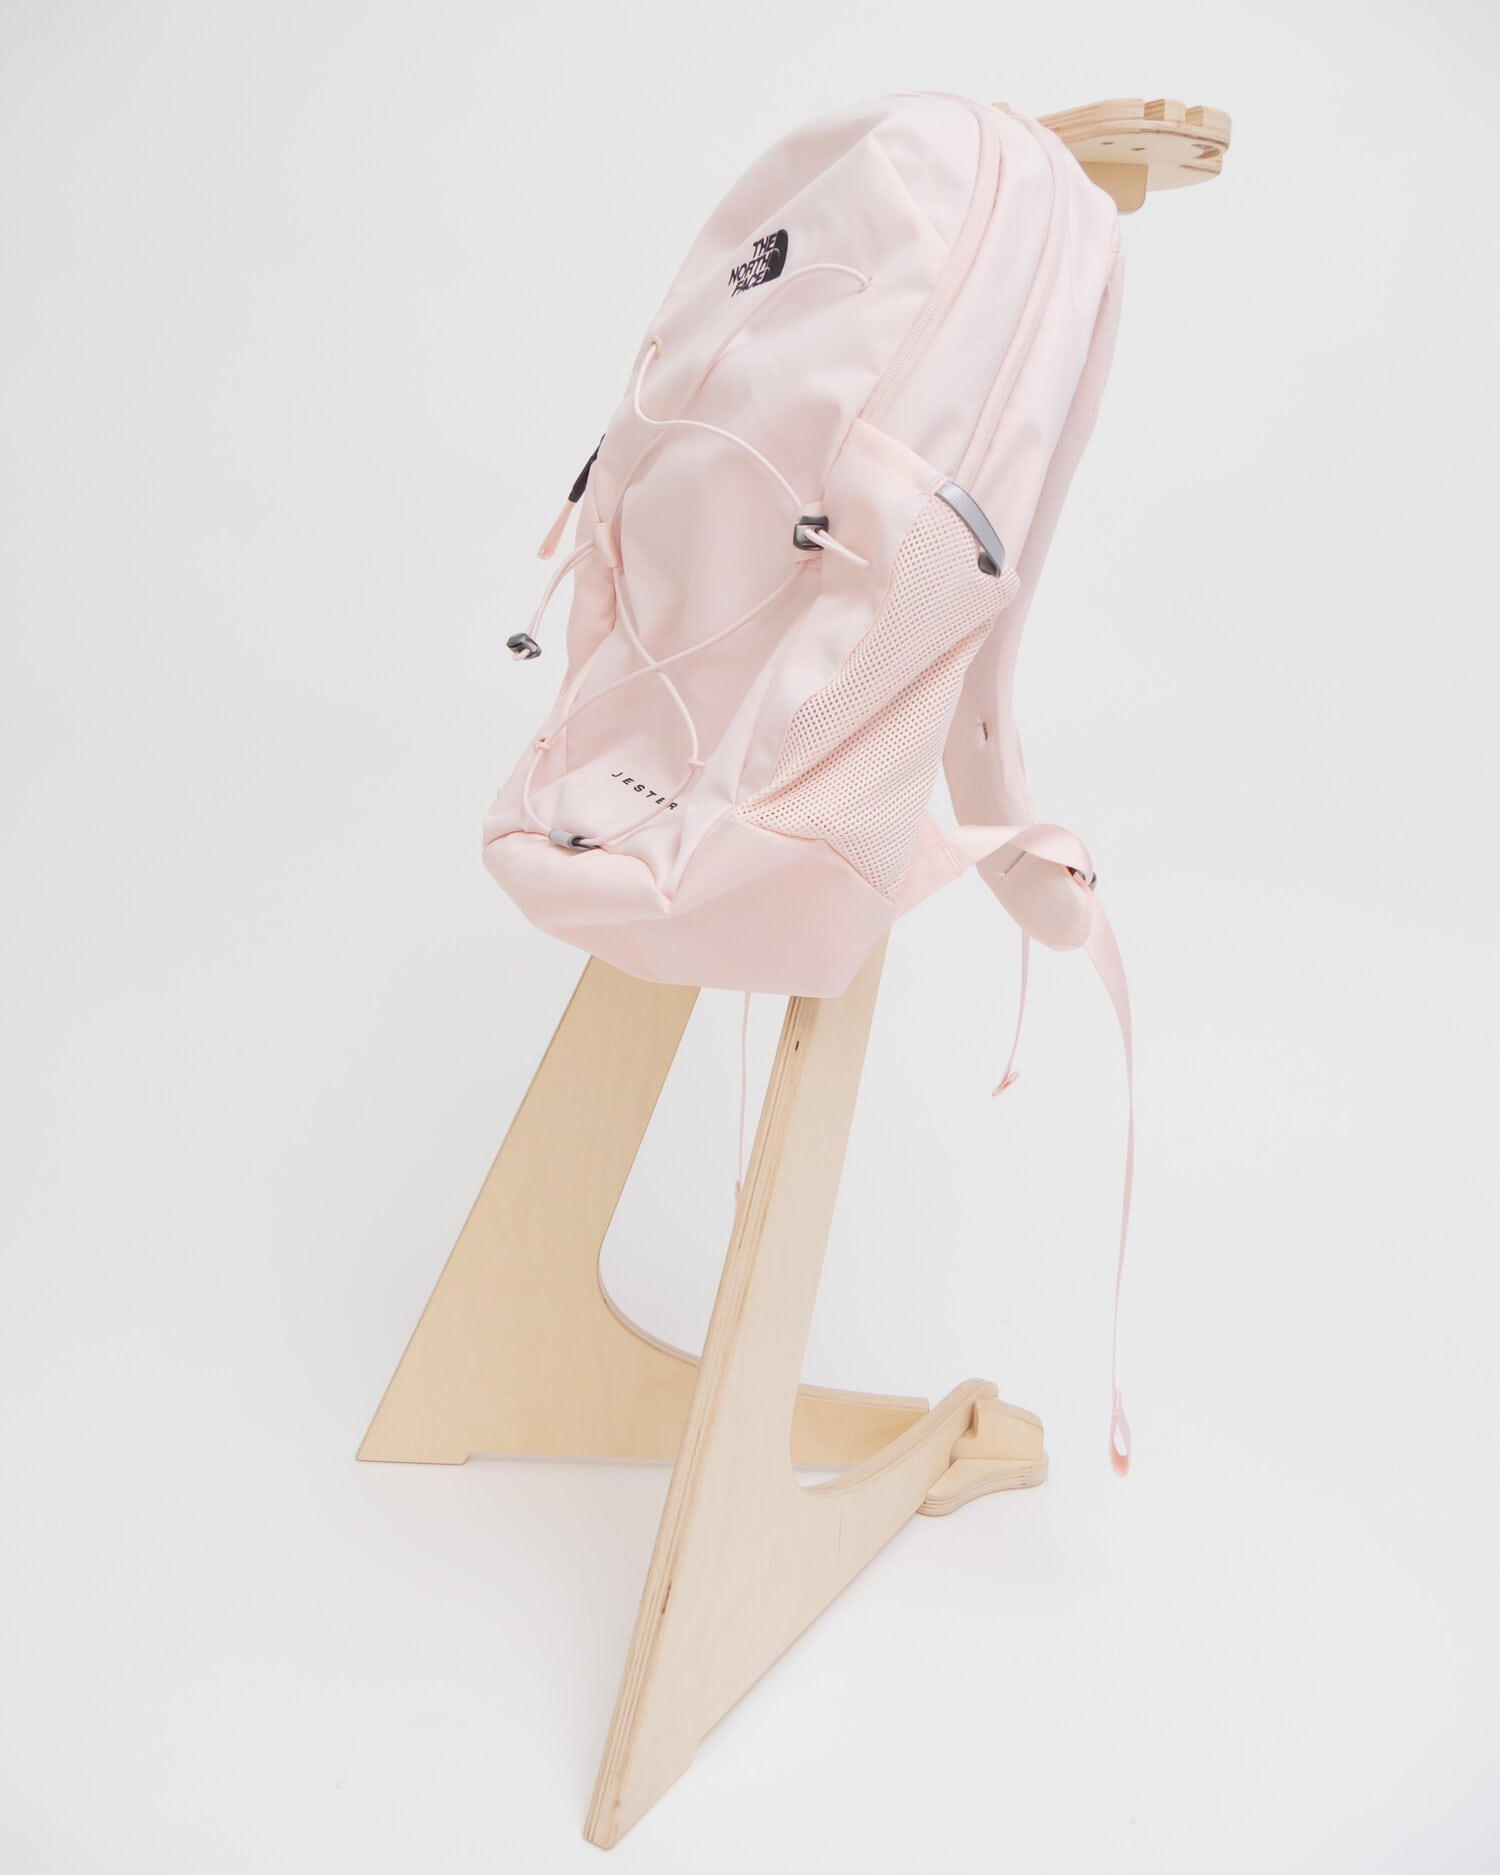 The Atlas Backpack Stand